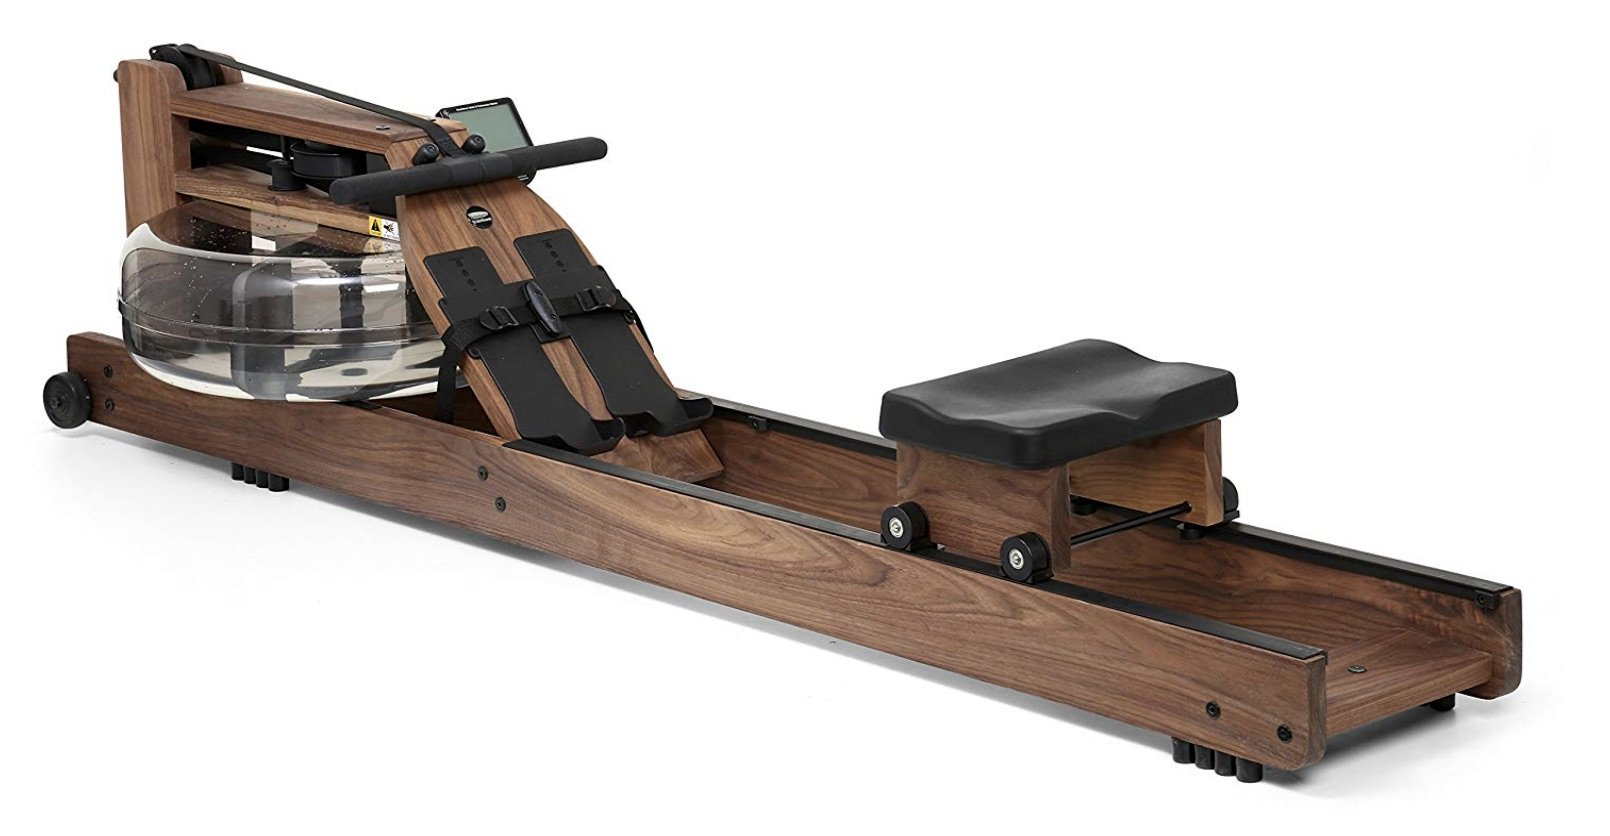 WaterRower Classic Rower Build Quality